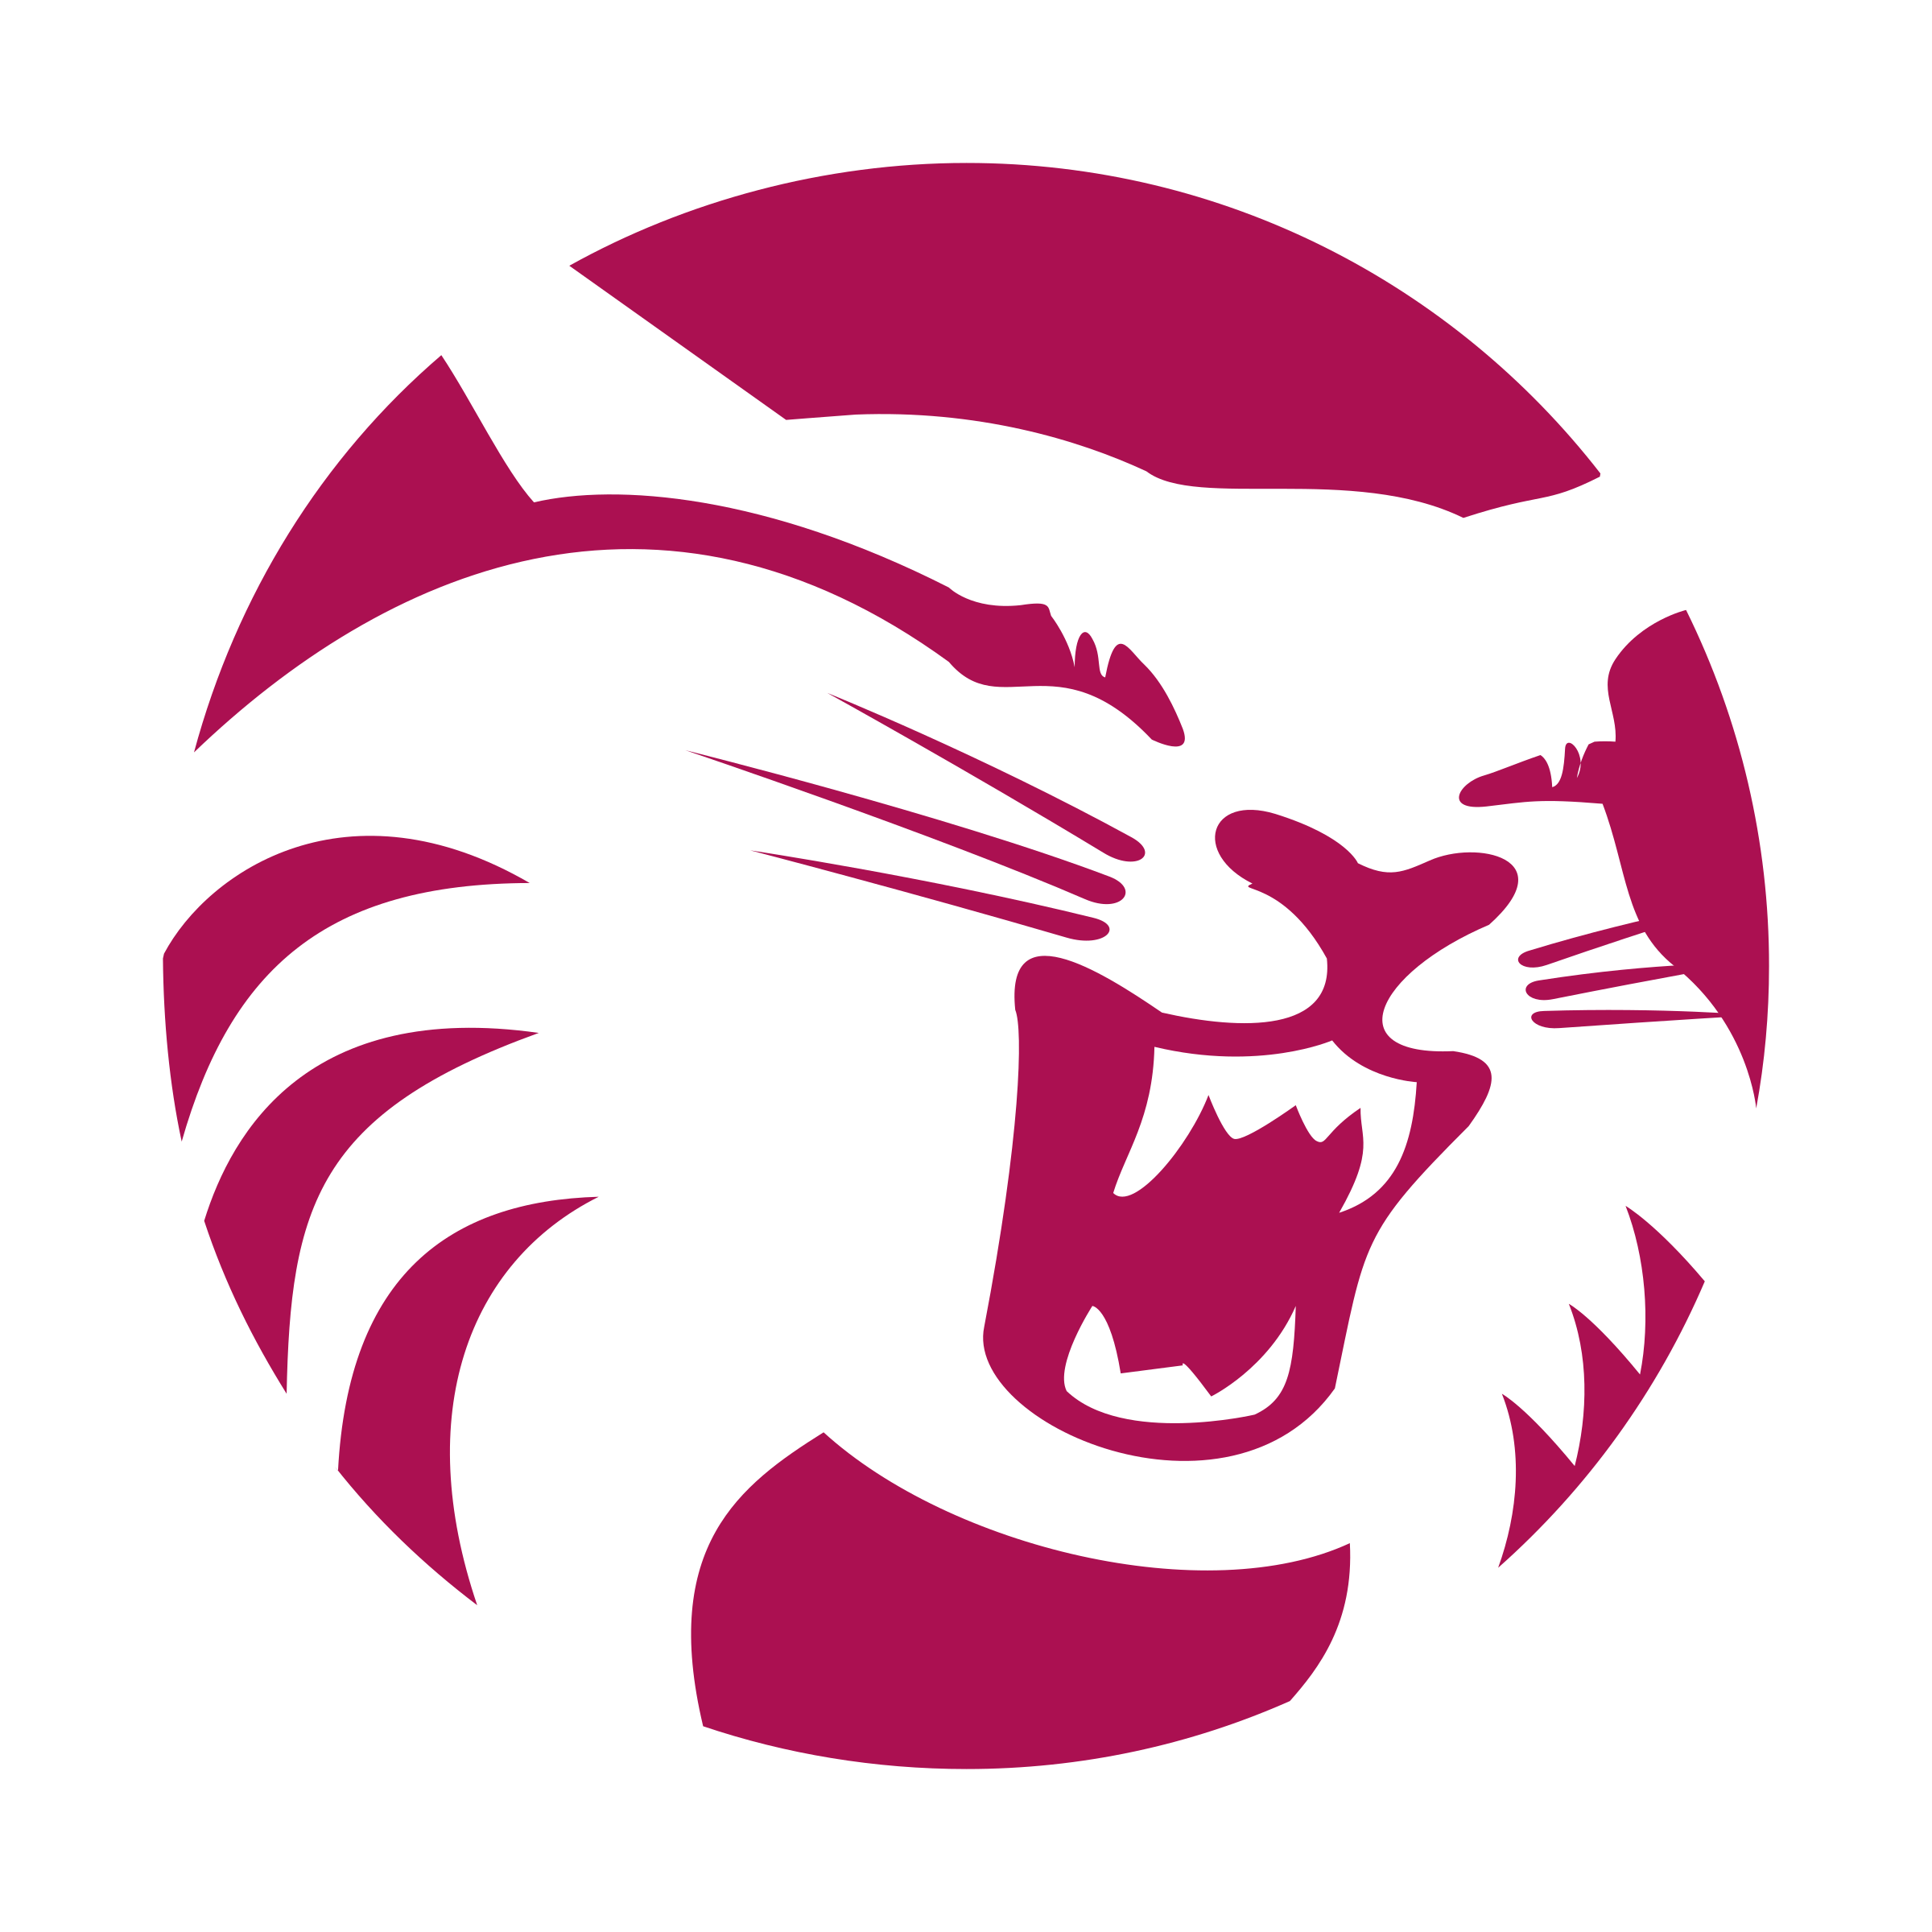 Wildcat clipart wolverine. Athletics logo png transparent